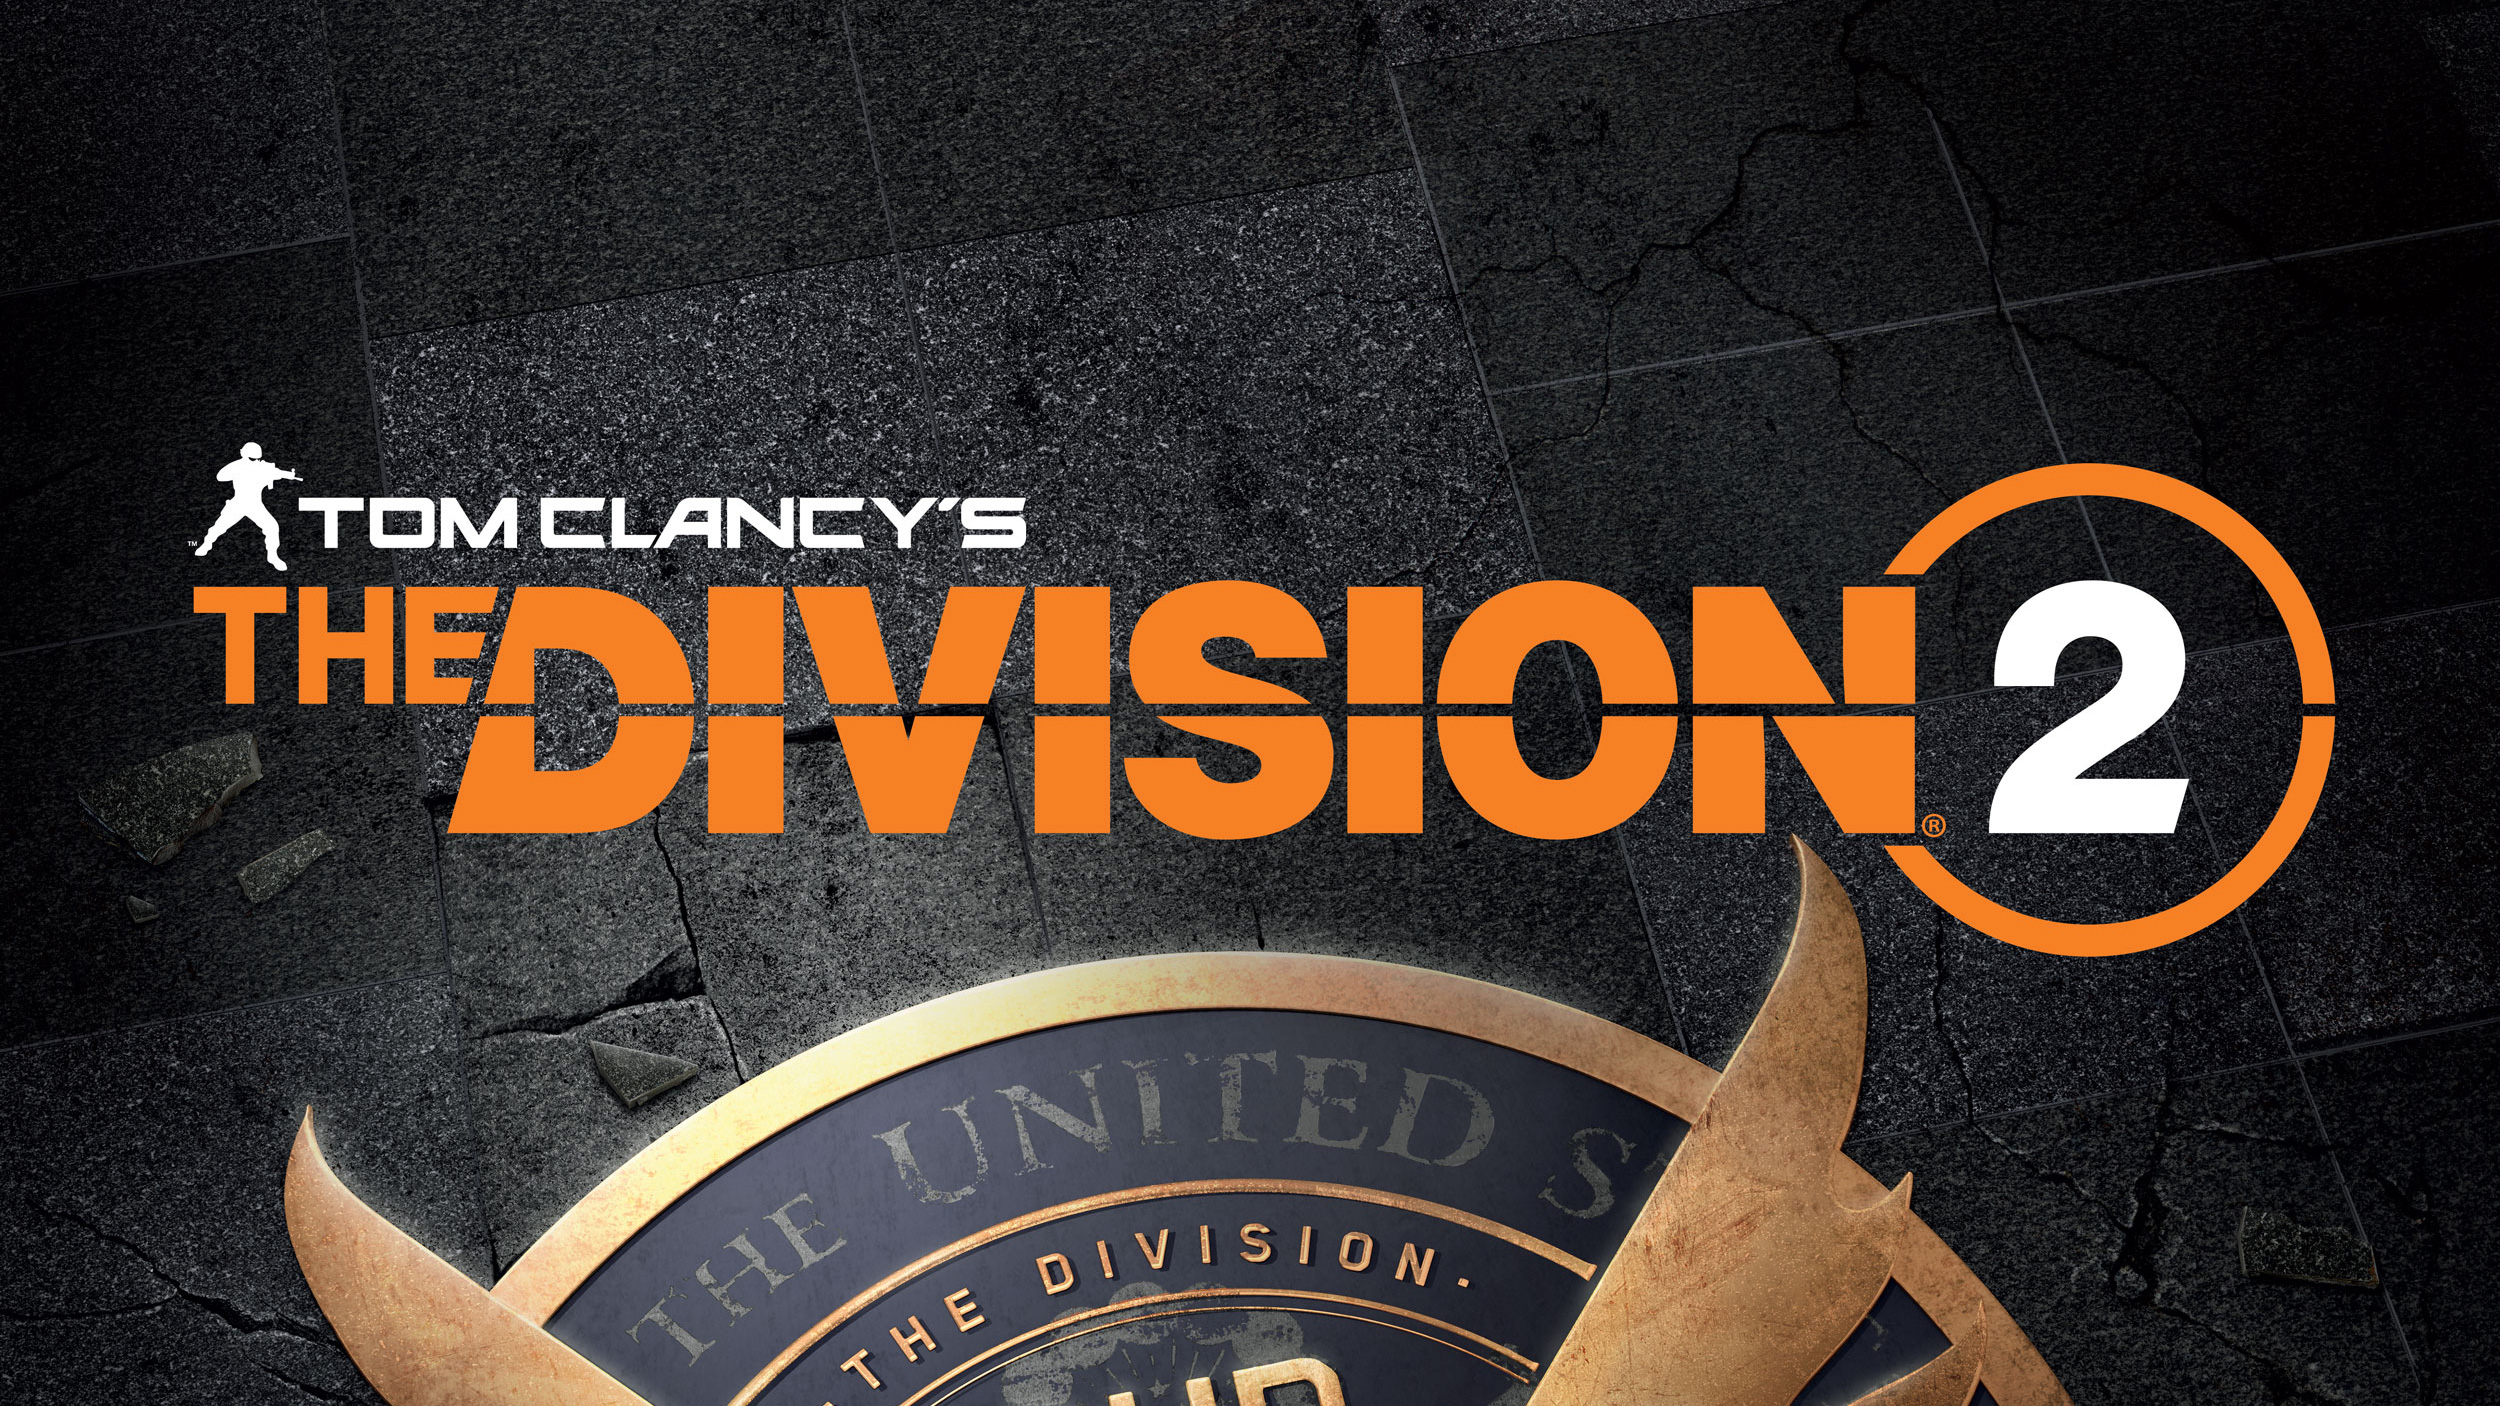 Tom Clancys The Division 2 Logo Hd Games 4k Wallpapers Images